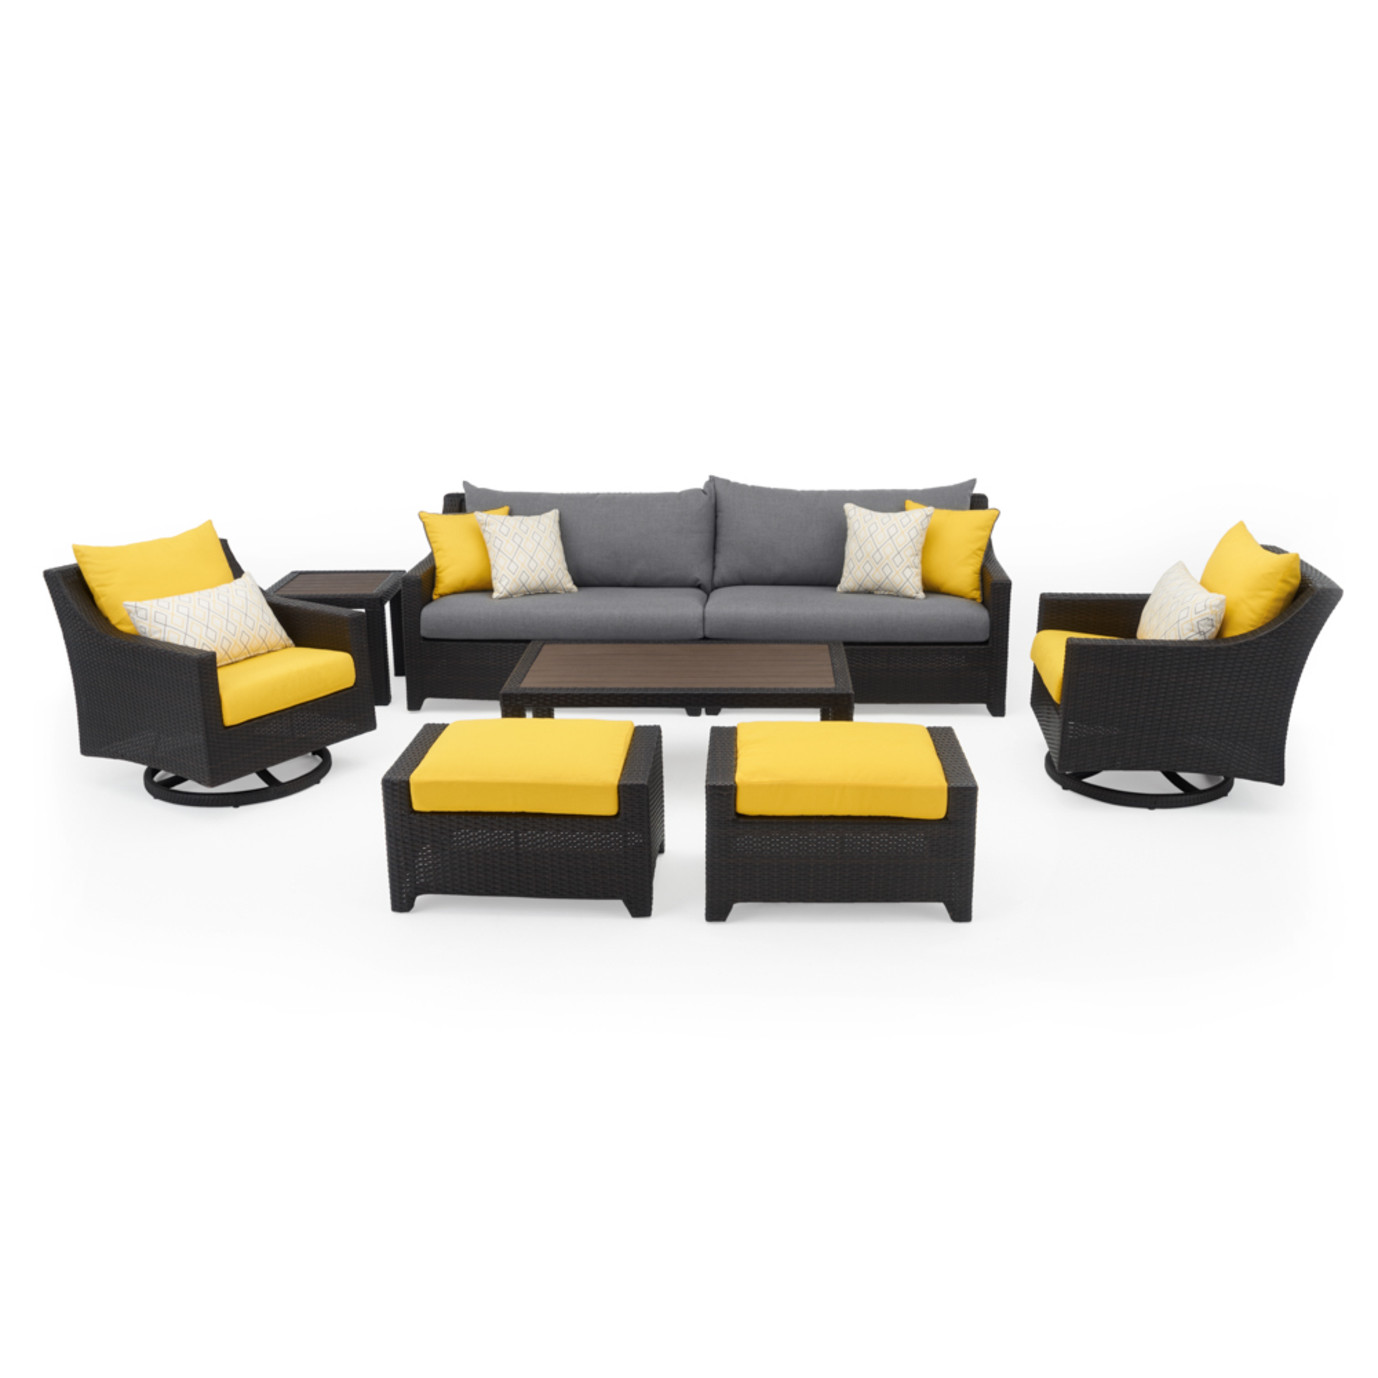 Deco™ Deluxe 8pc Sofa & Club Chair Set - Sunflower Yellow